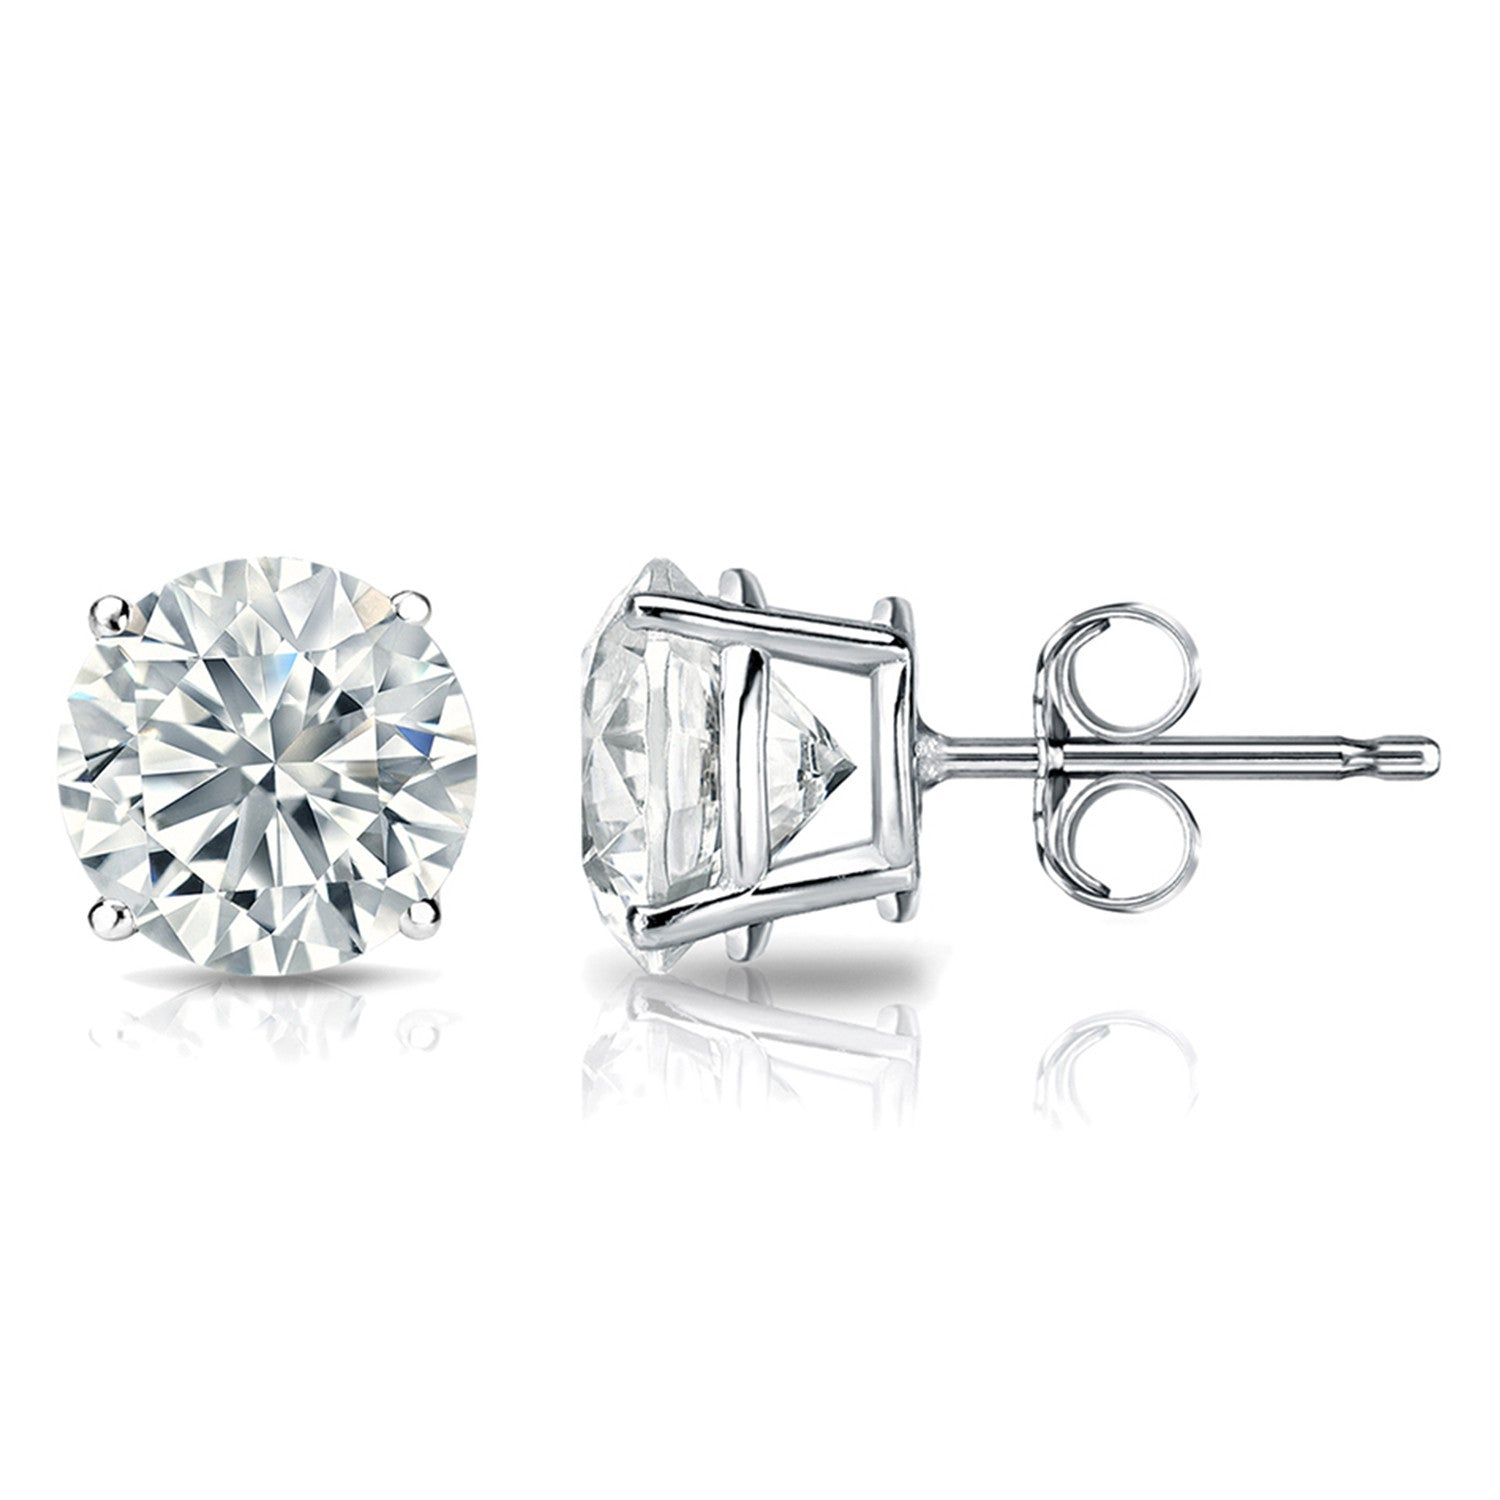 1/3 Carat Round 14K White Gold 4 Prong Basket Set Diamond Solitaire Stud Earrings (Classic Quality)